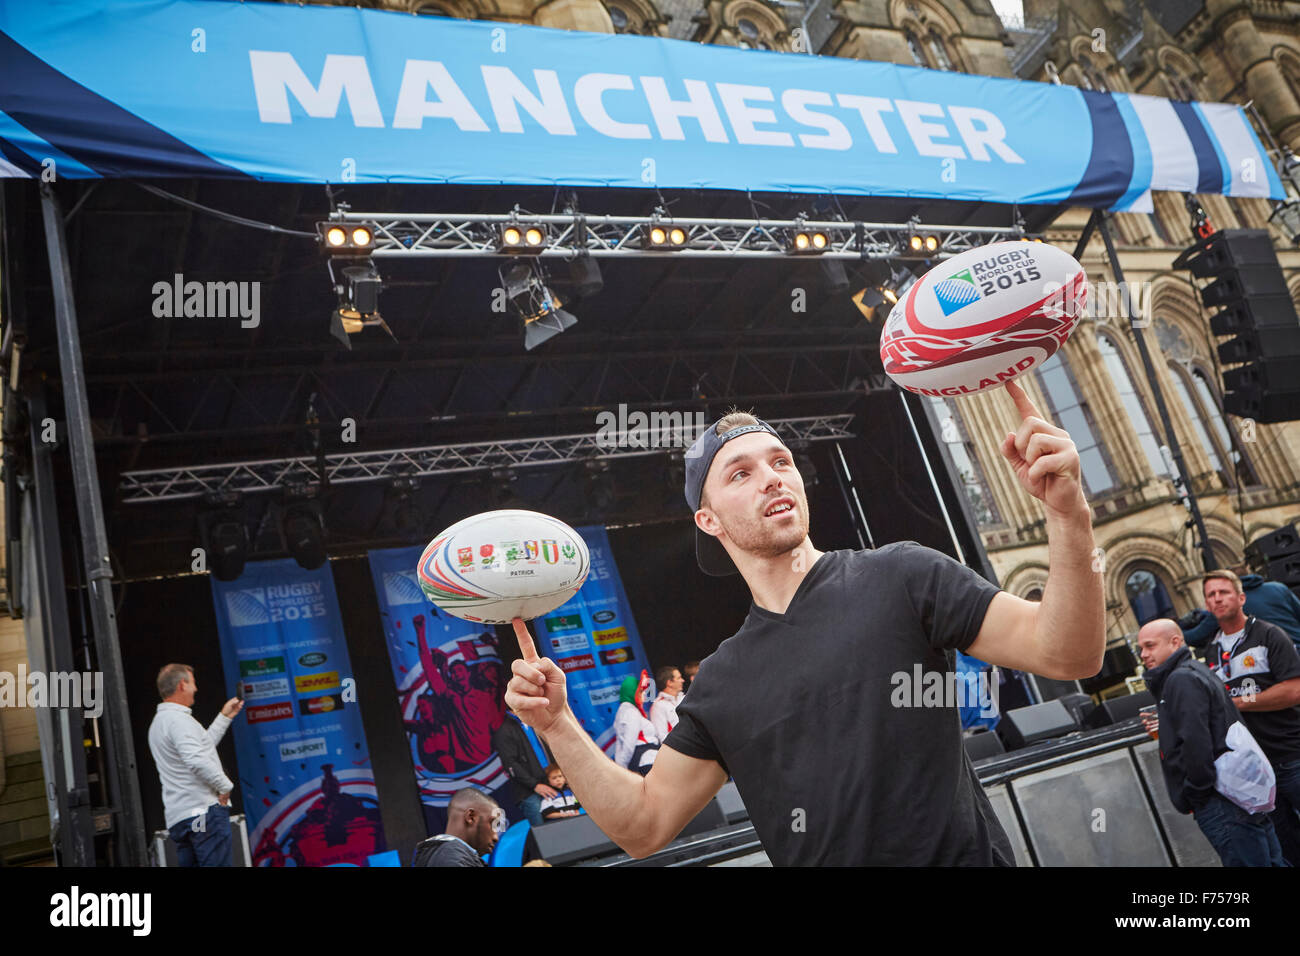 Rugby 2015 World Cup fanzine at Manchester Albert Square, blah skill display spinning finger - Stock Image